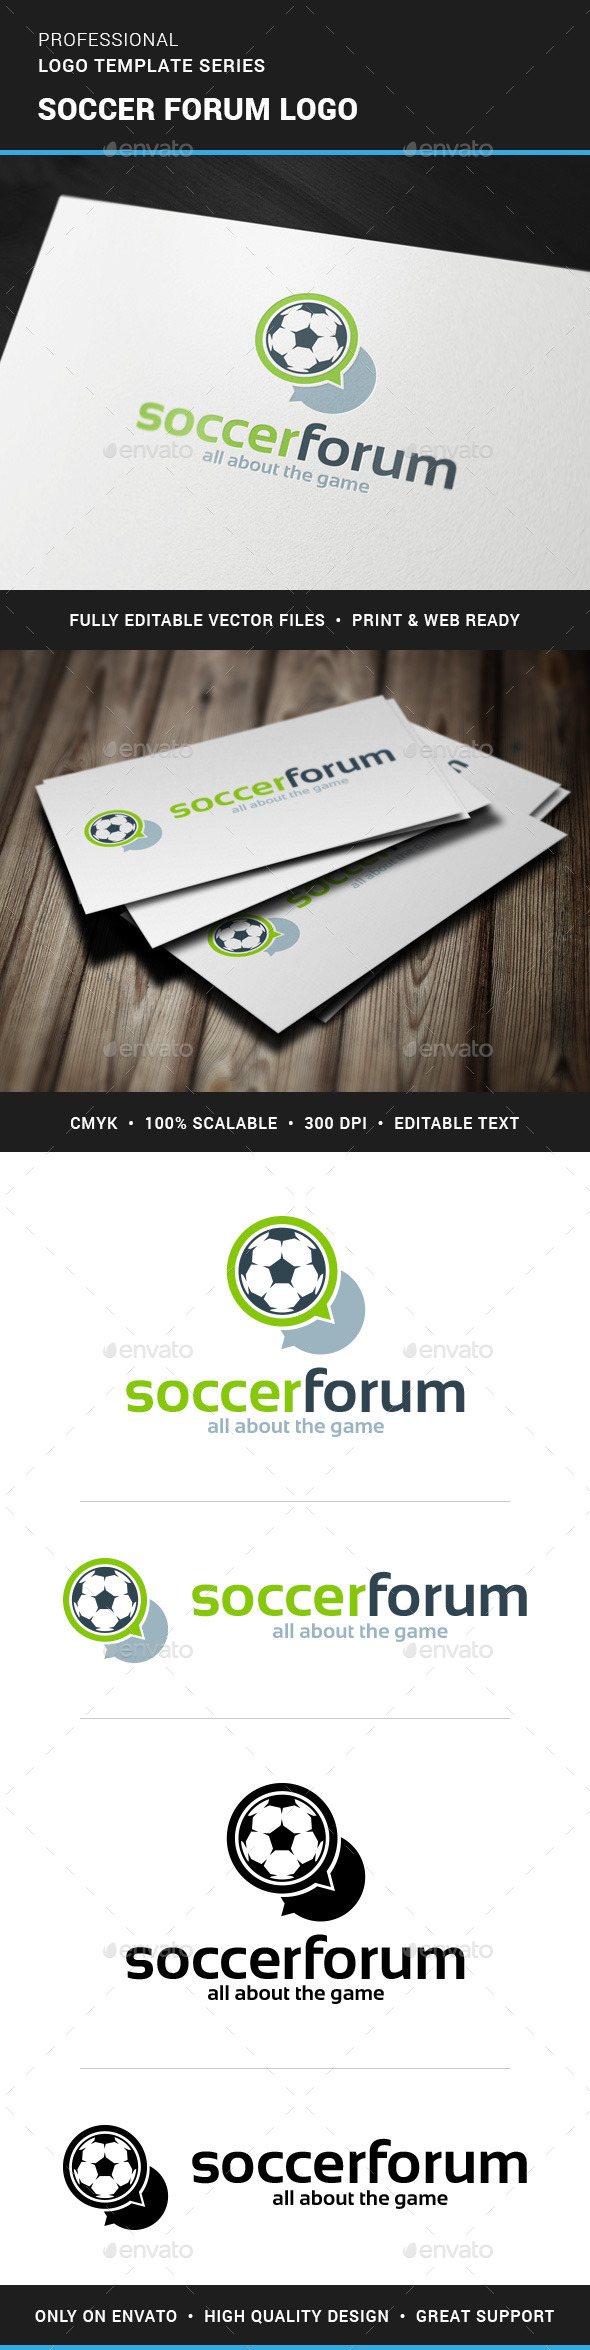 Soccer Forum Logo Template - Objects Logo Templates